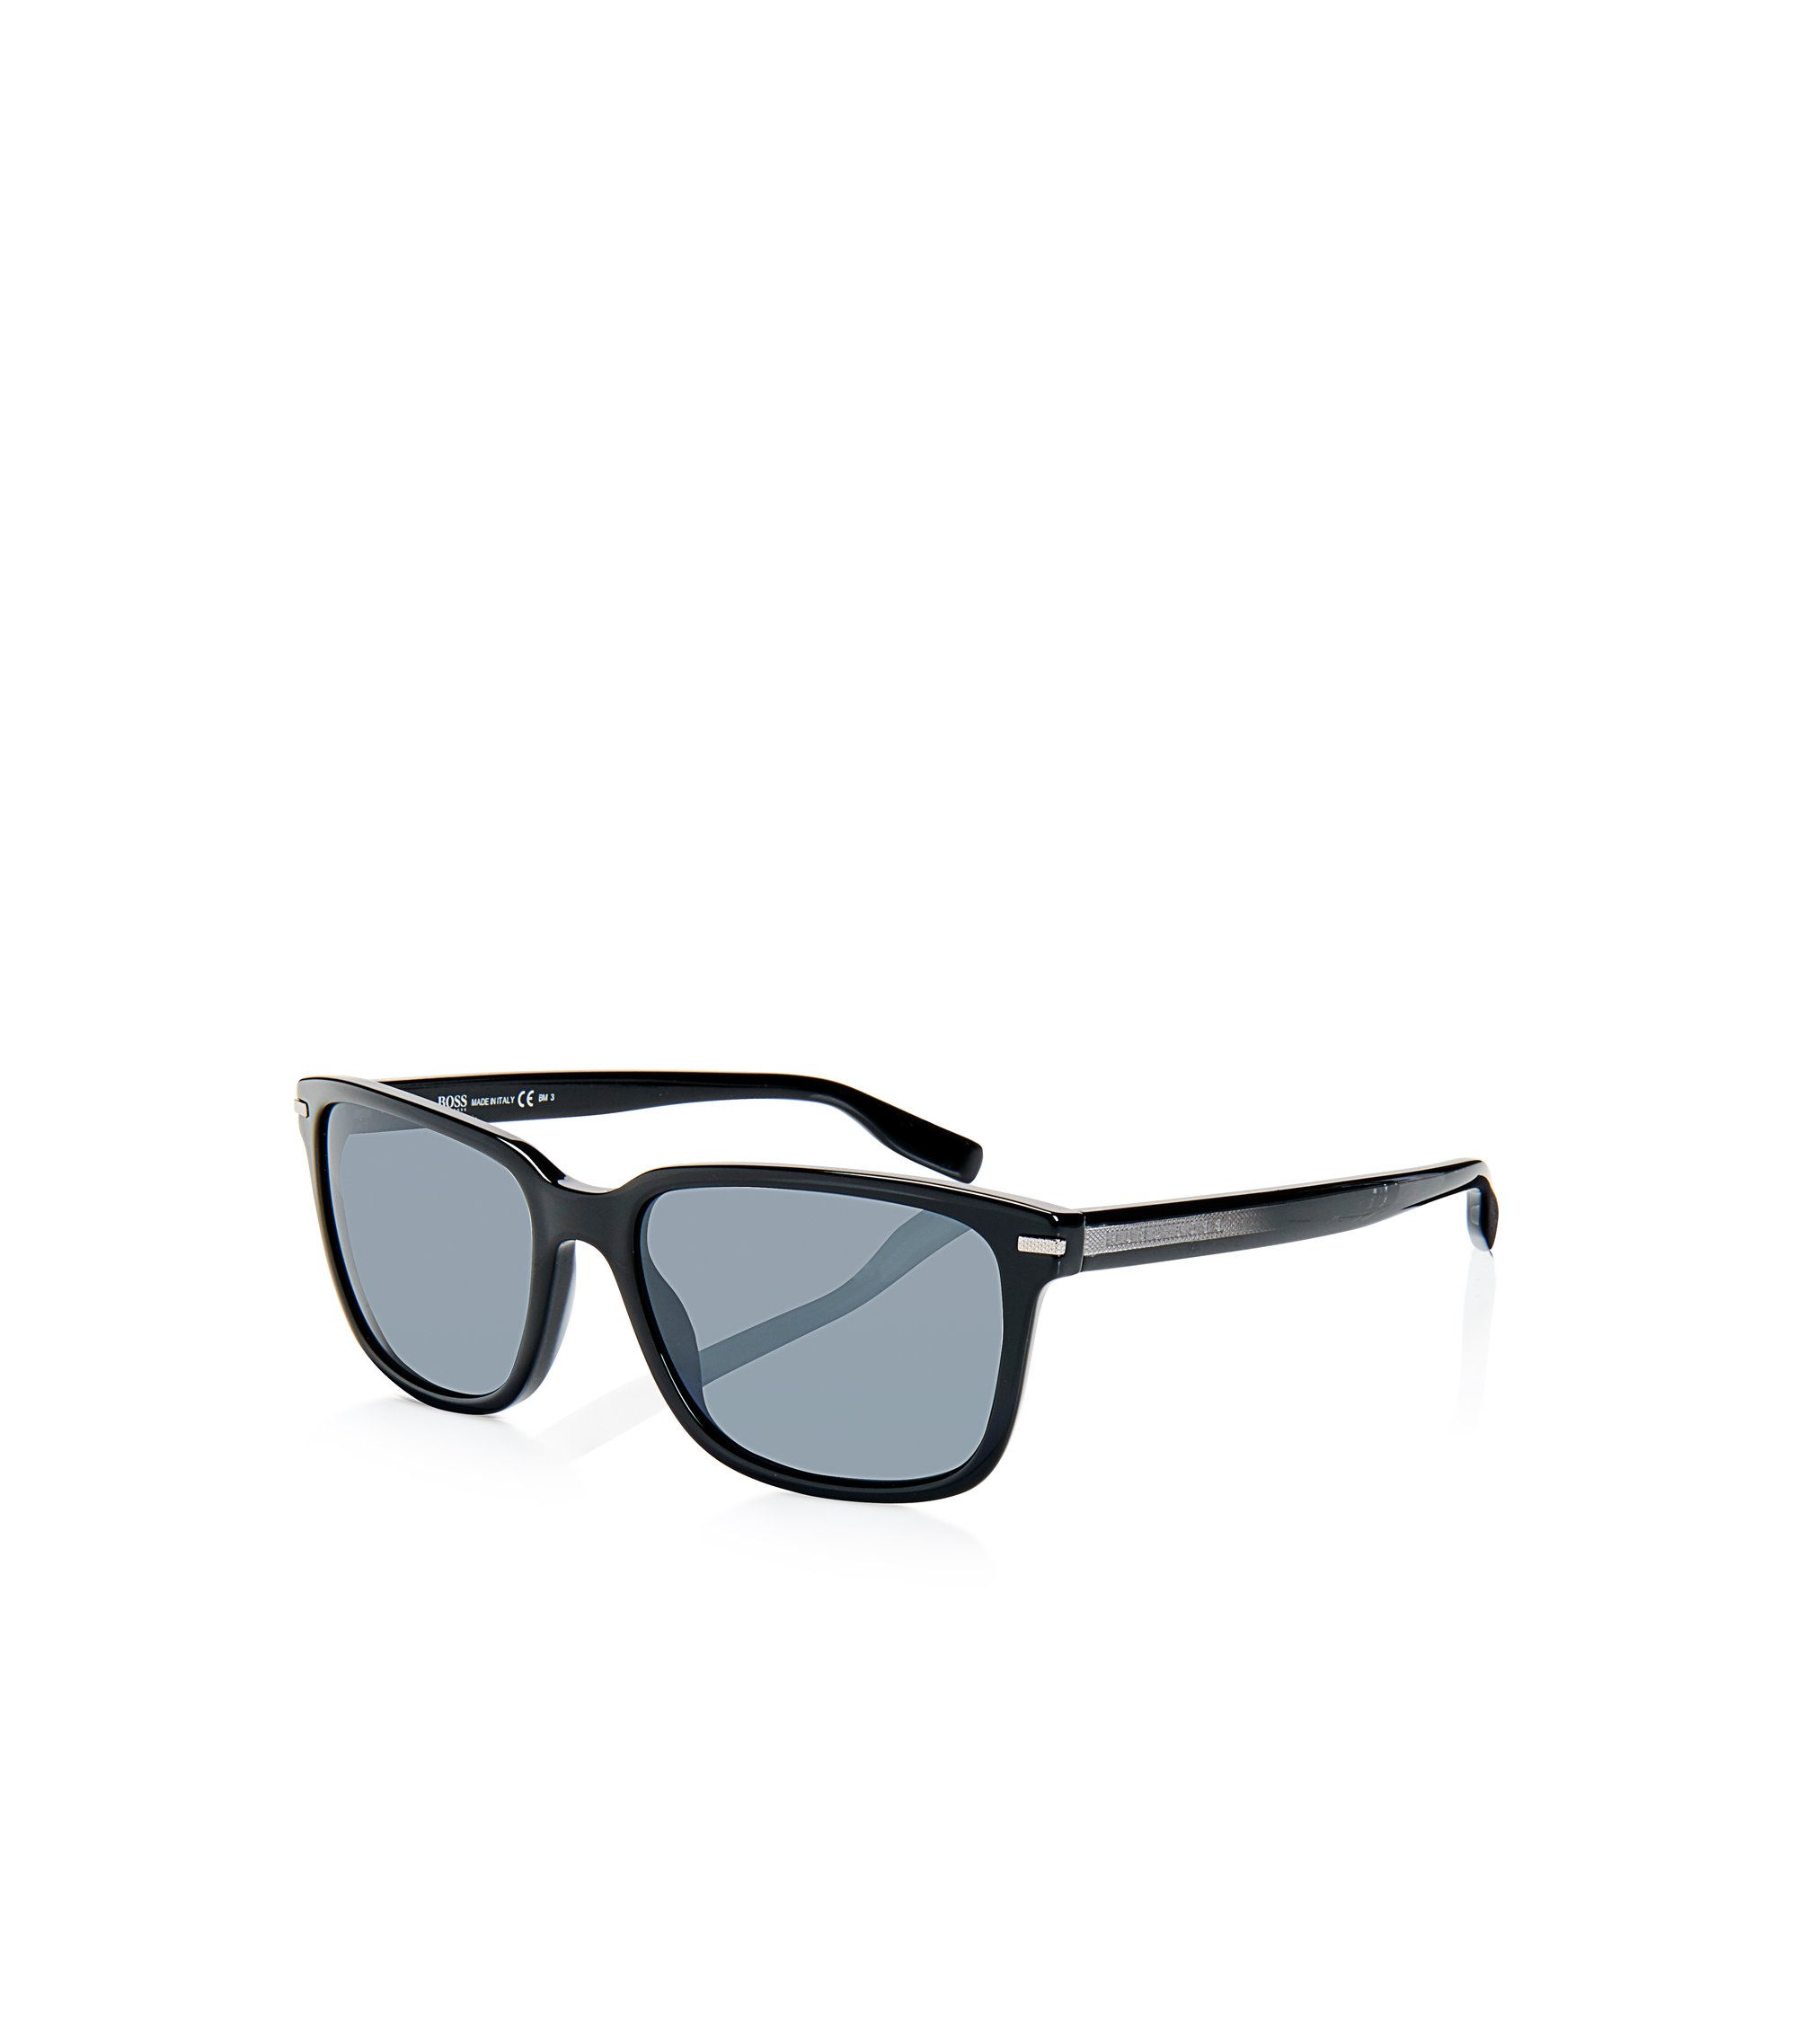 'Sunglasses' | Black Mirror Lens Sunglasses , Assorted-Pre-Pack